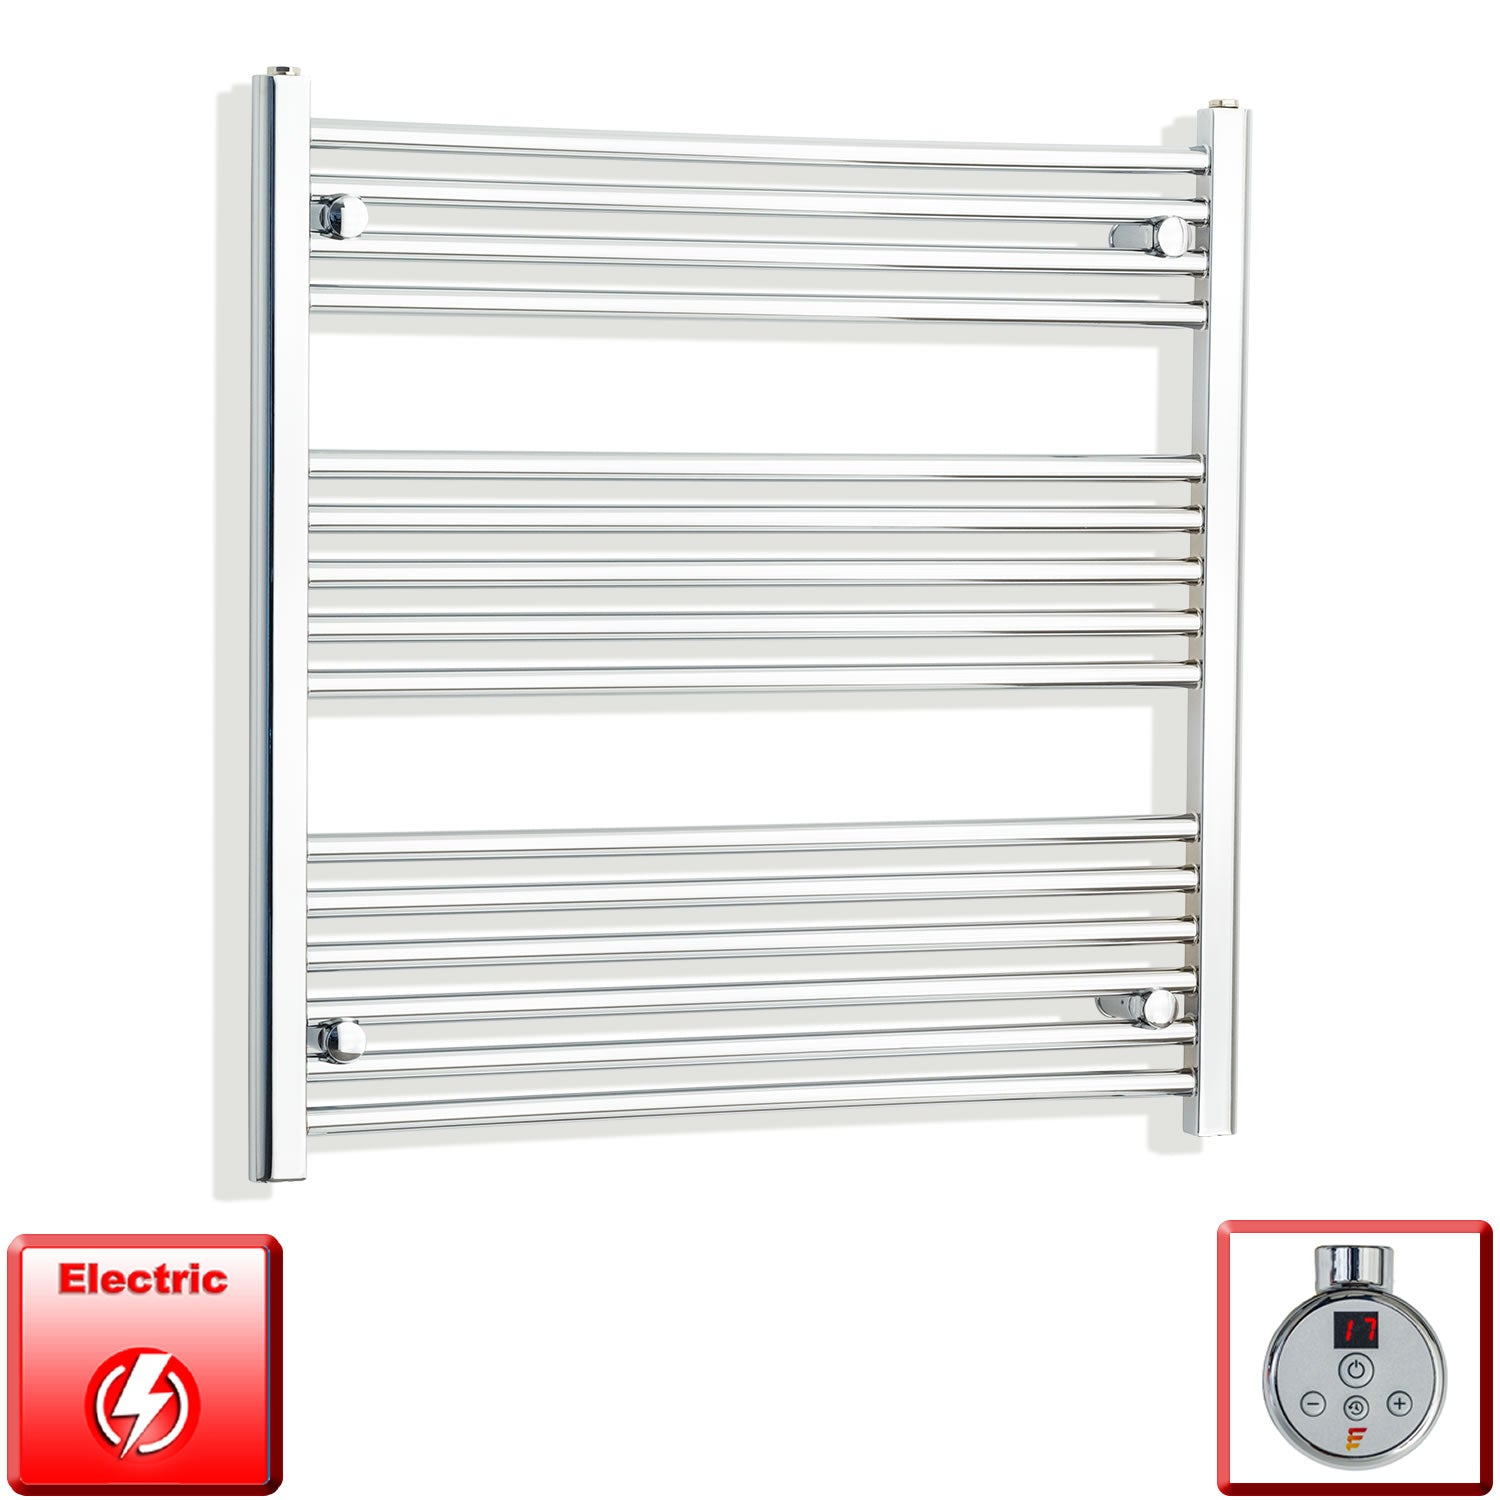 900mm Wide 800mm High Pre-Filled Chrome Electric Towel Rail Radiator With Thermostatic DIGI Element